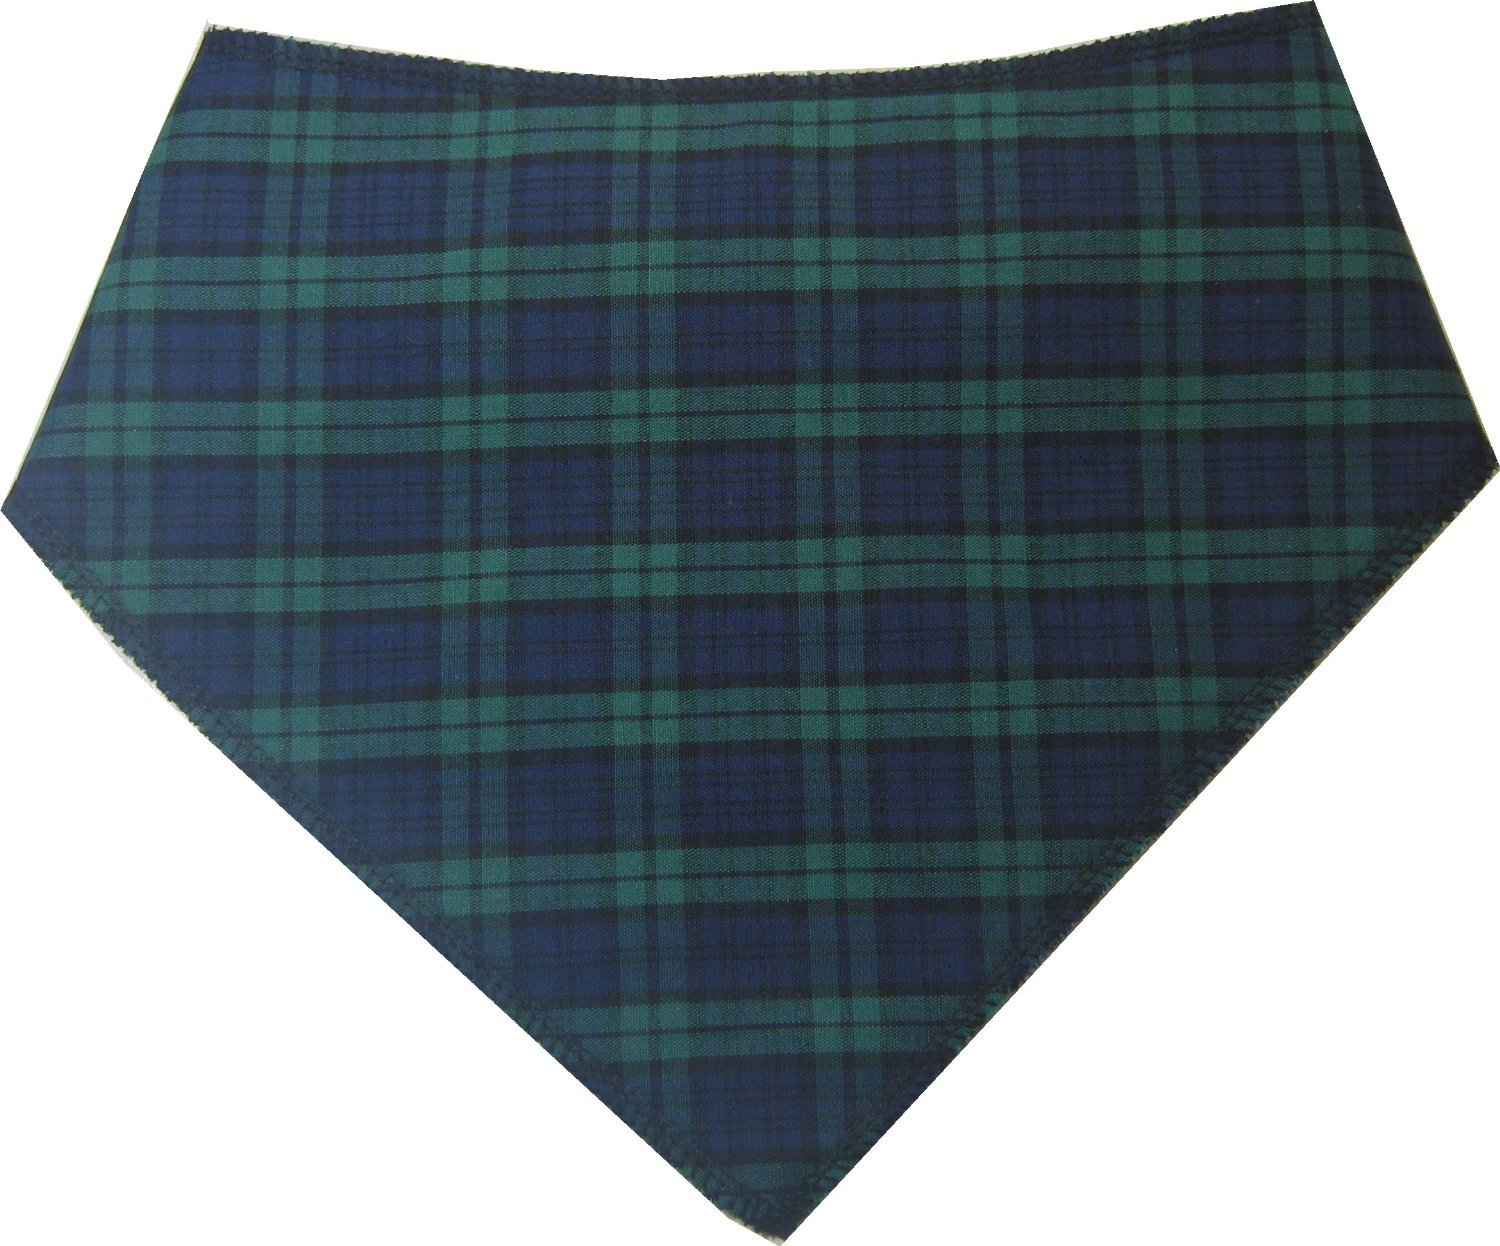 Spoilt Rotten Pets (S4 Blue Tartan Dog Bandana. Black Watch Kilting – Extra Large Size Generally Fits Rottweilers and St Bernard Sized Dogs. Neck Size 23″ to 28″ Gorgeous Range of Patterns & Colours.